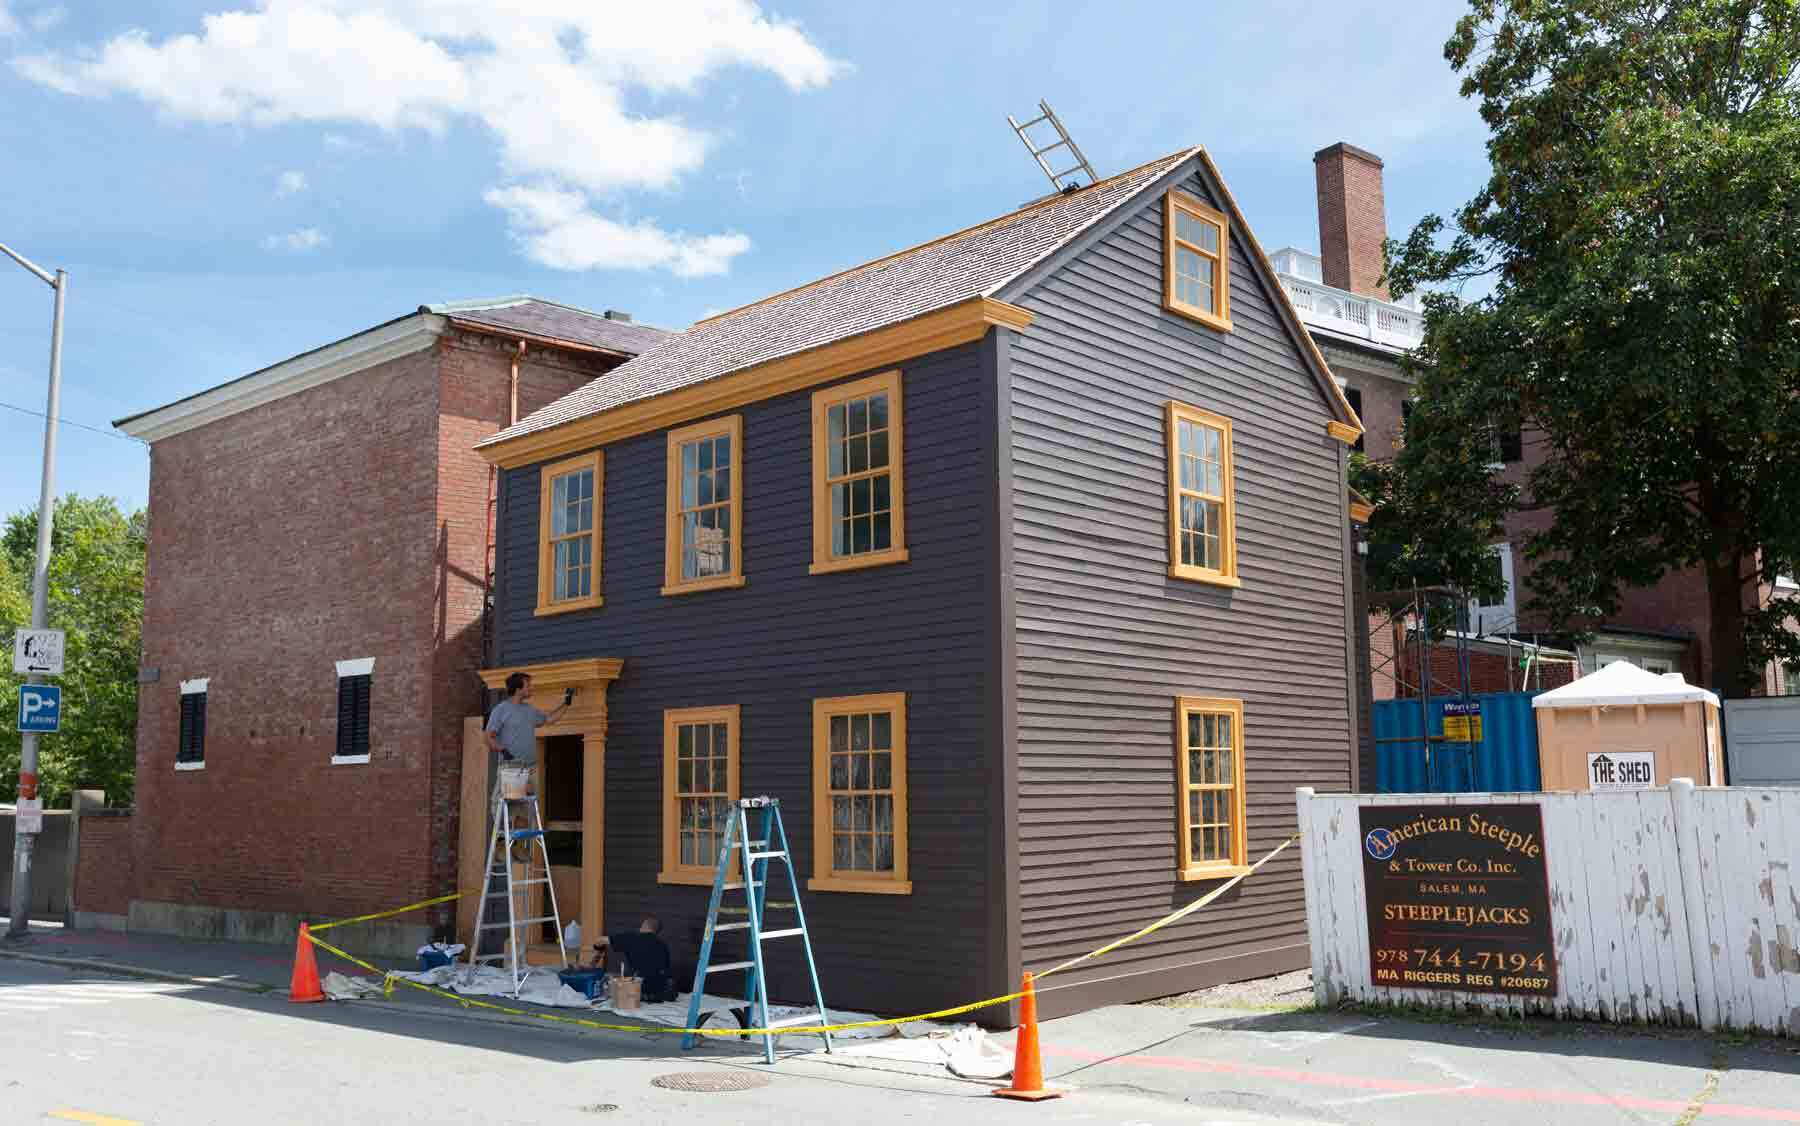 Daniel Bray House being painted